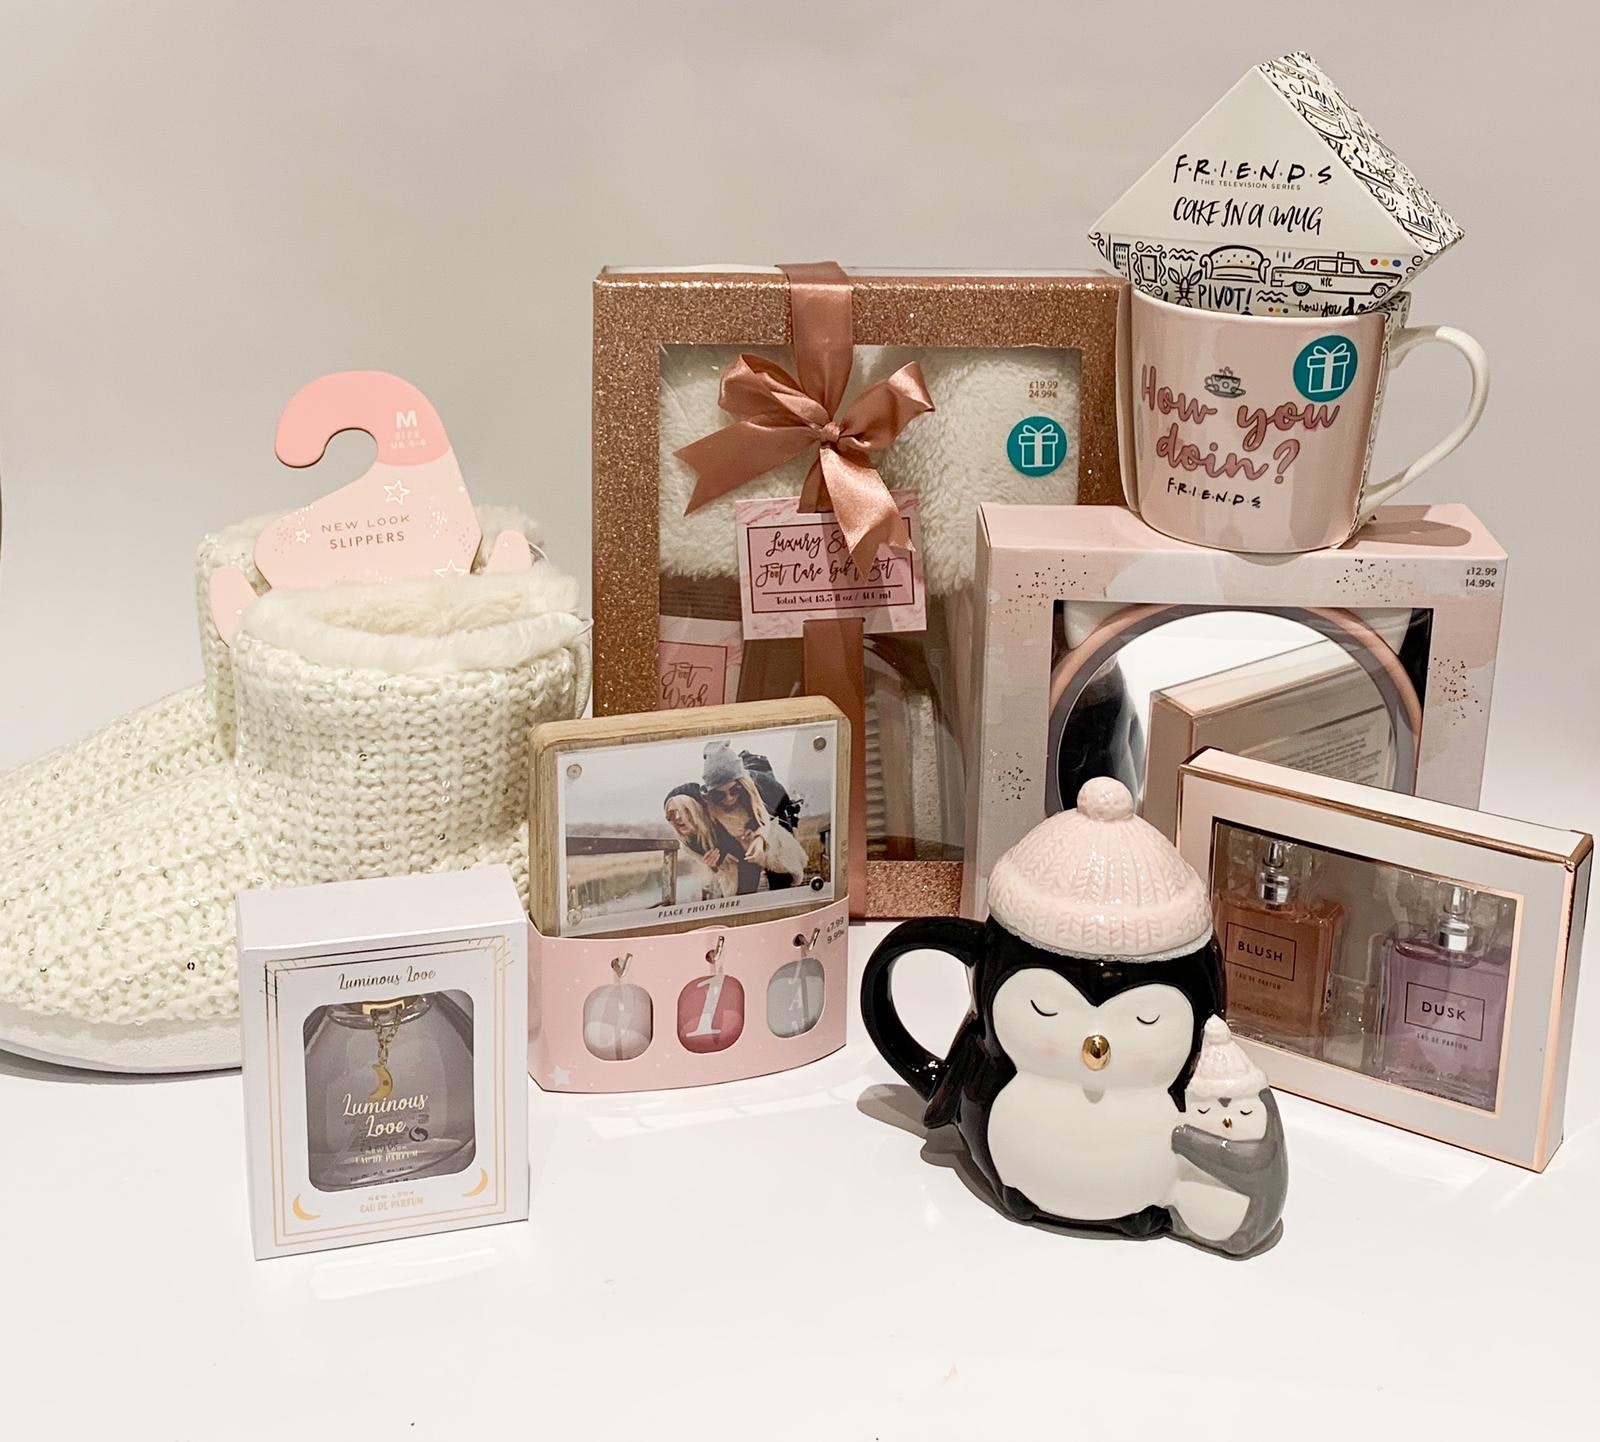 More trending gifts at our New Look - how cute are these? Guaranteed winners.